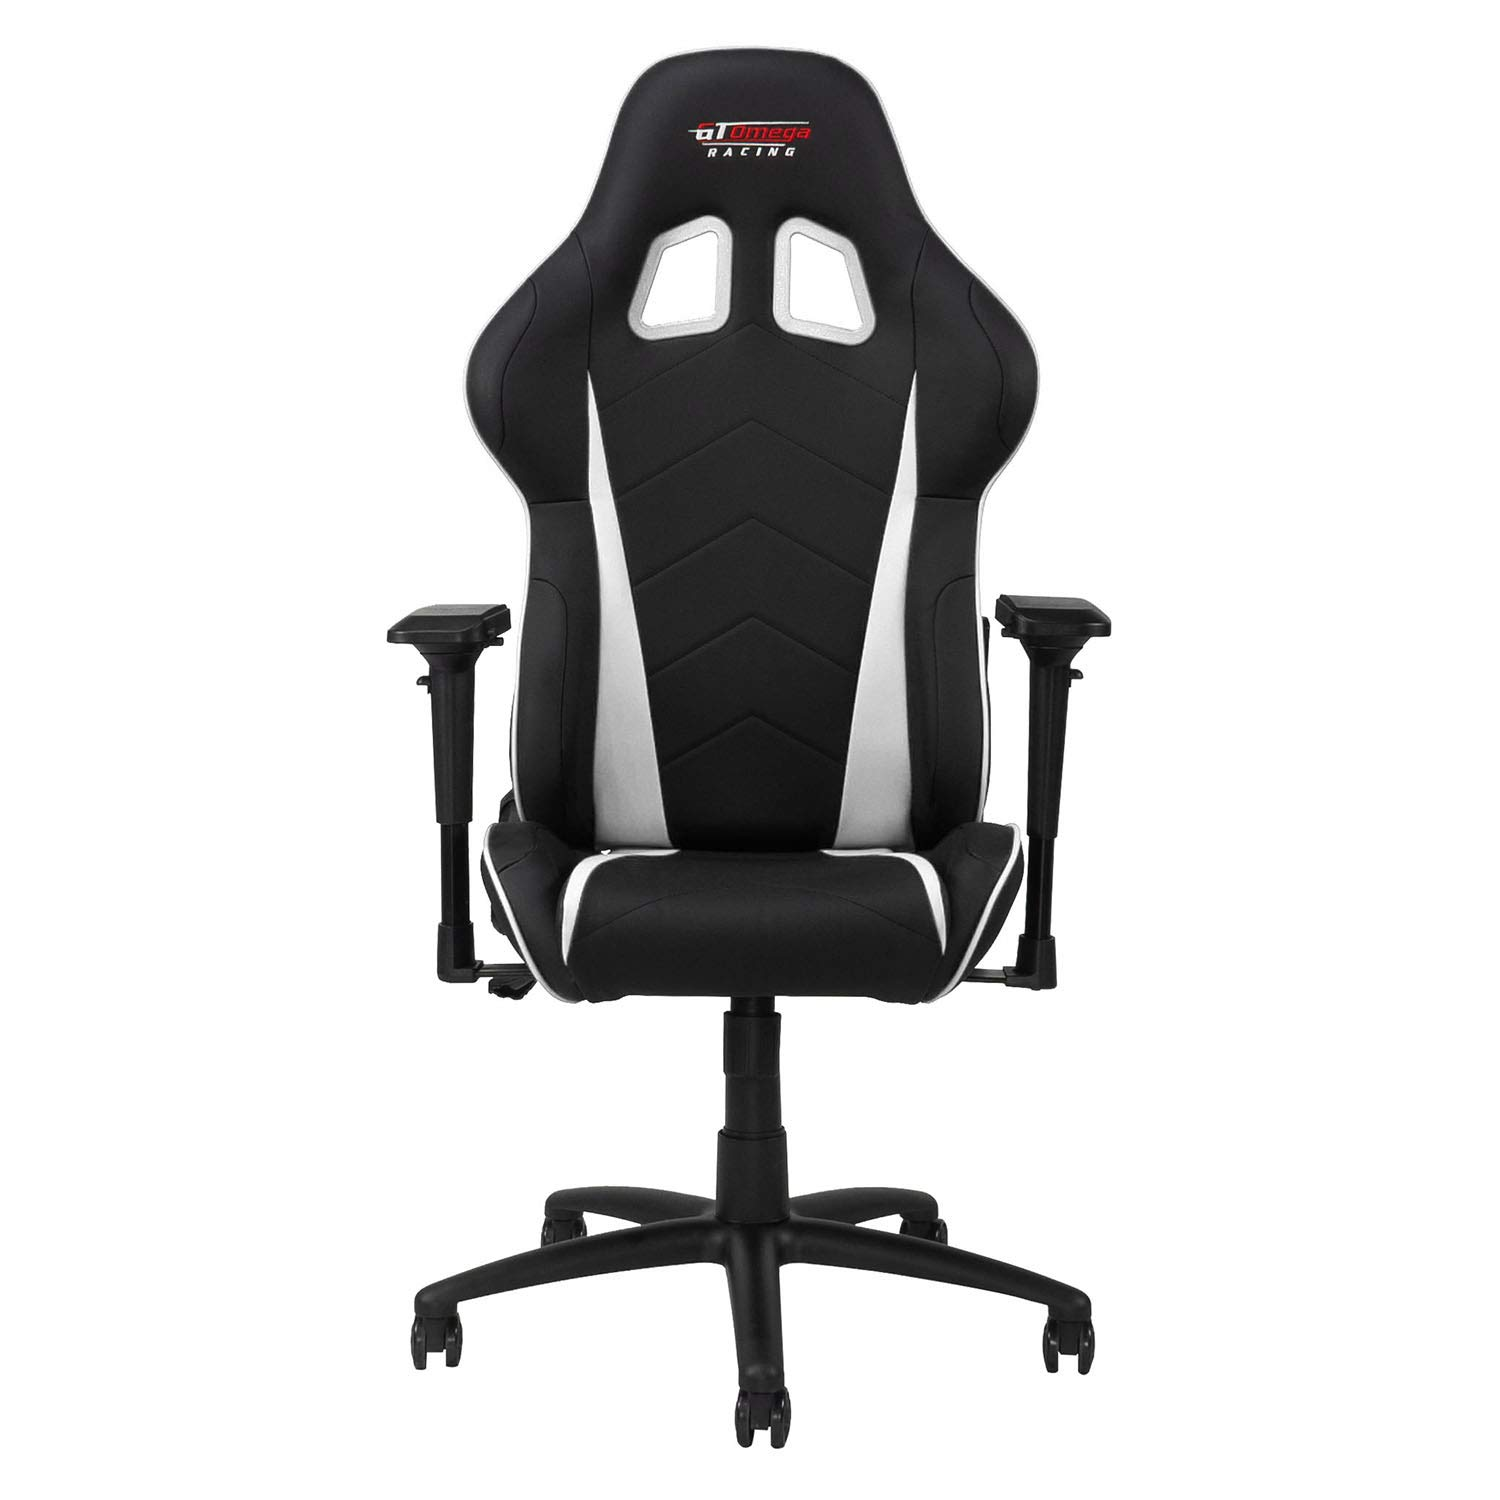 GT OMEGA PRO Racing Gaming Chair with Ergonomic Lumbar Support – PVC Leather Reclining High Back Home Office Chair with Swivel – PC Gaming Desk Chair for Ultimate Racing Experience – Black Next White